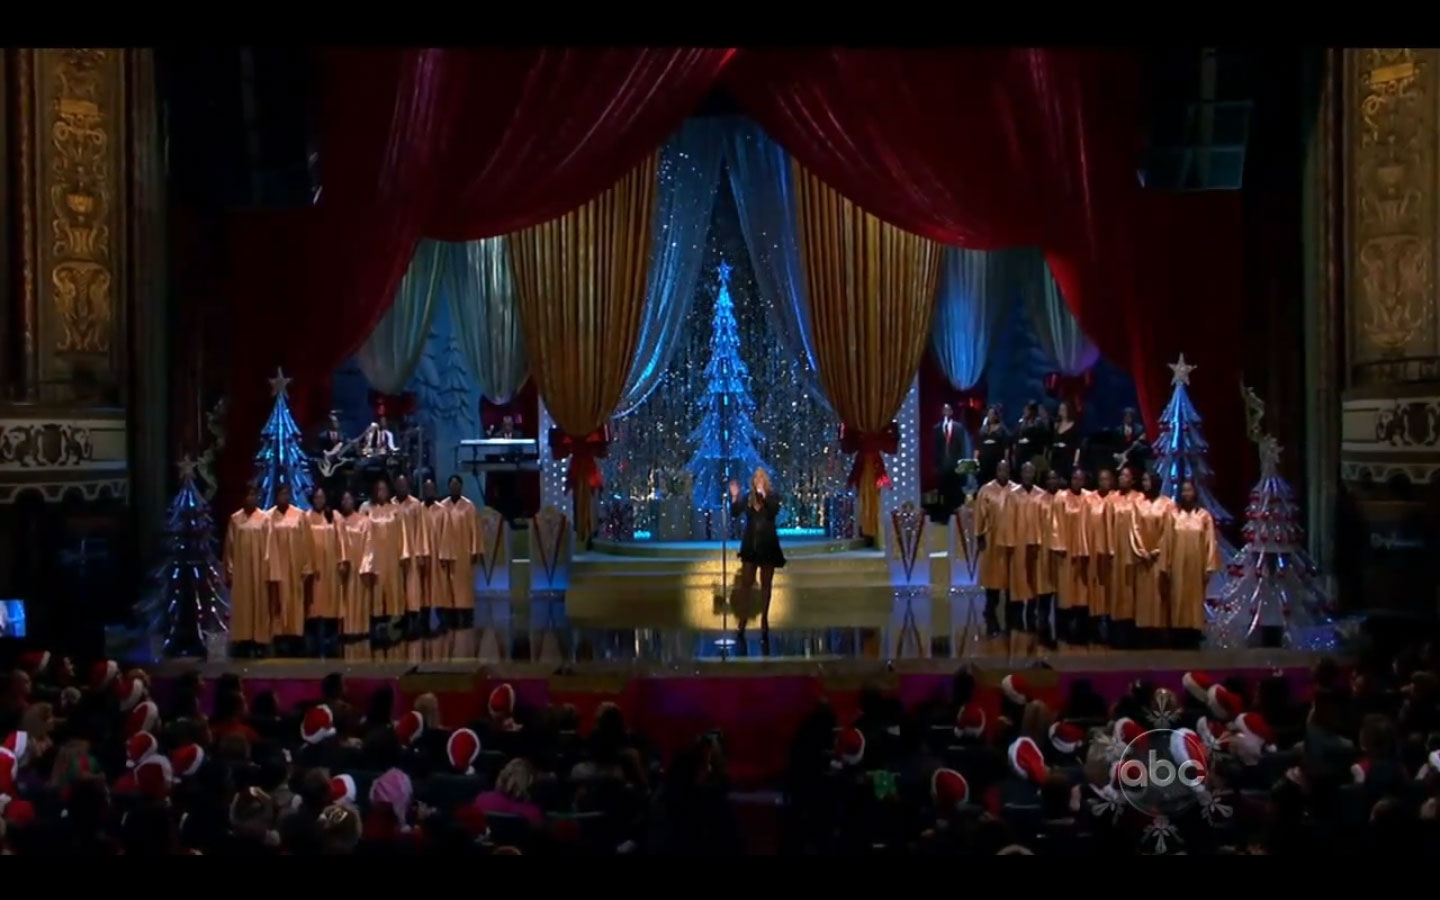 mariah carey abc christmas special 2010 watch and read the review lip synced or not